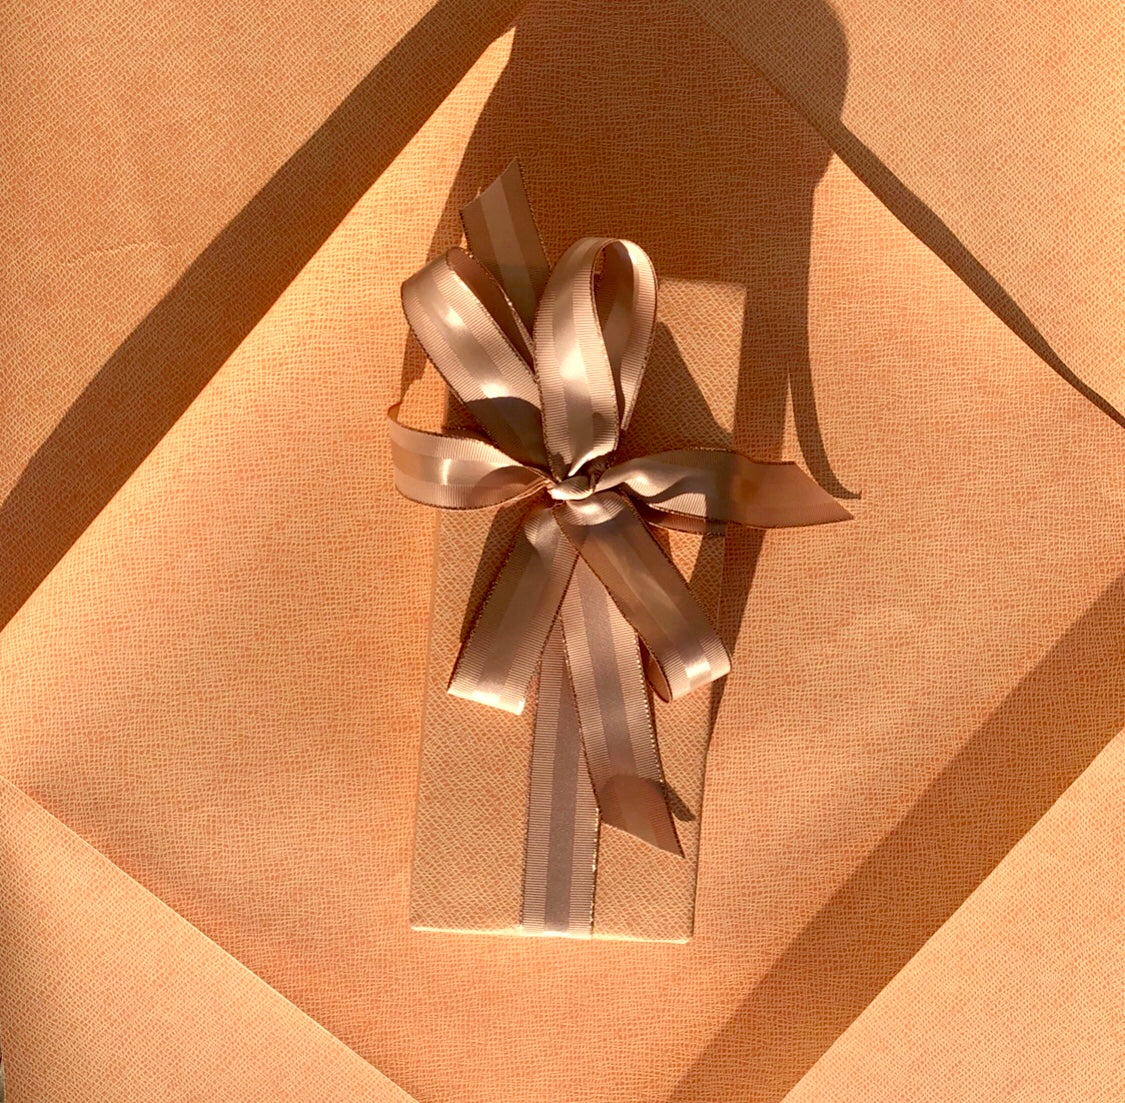 Tan Grosgrain Ribbon with Rose Gold Border | Metallic Ribbon for Holiday Gifts